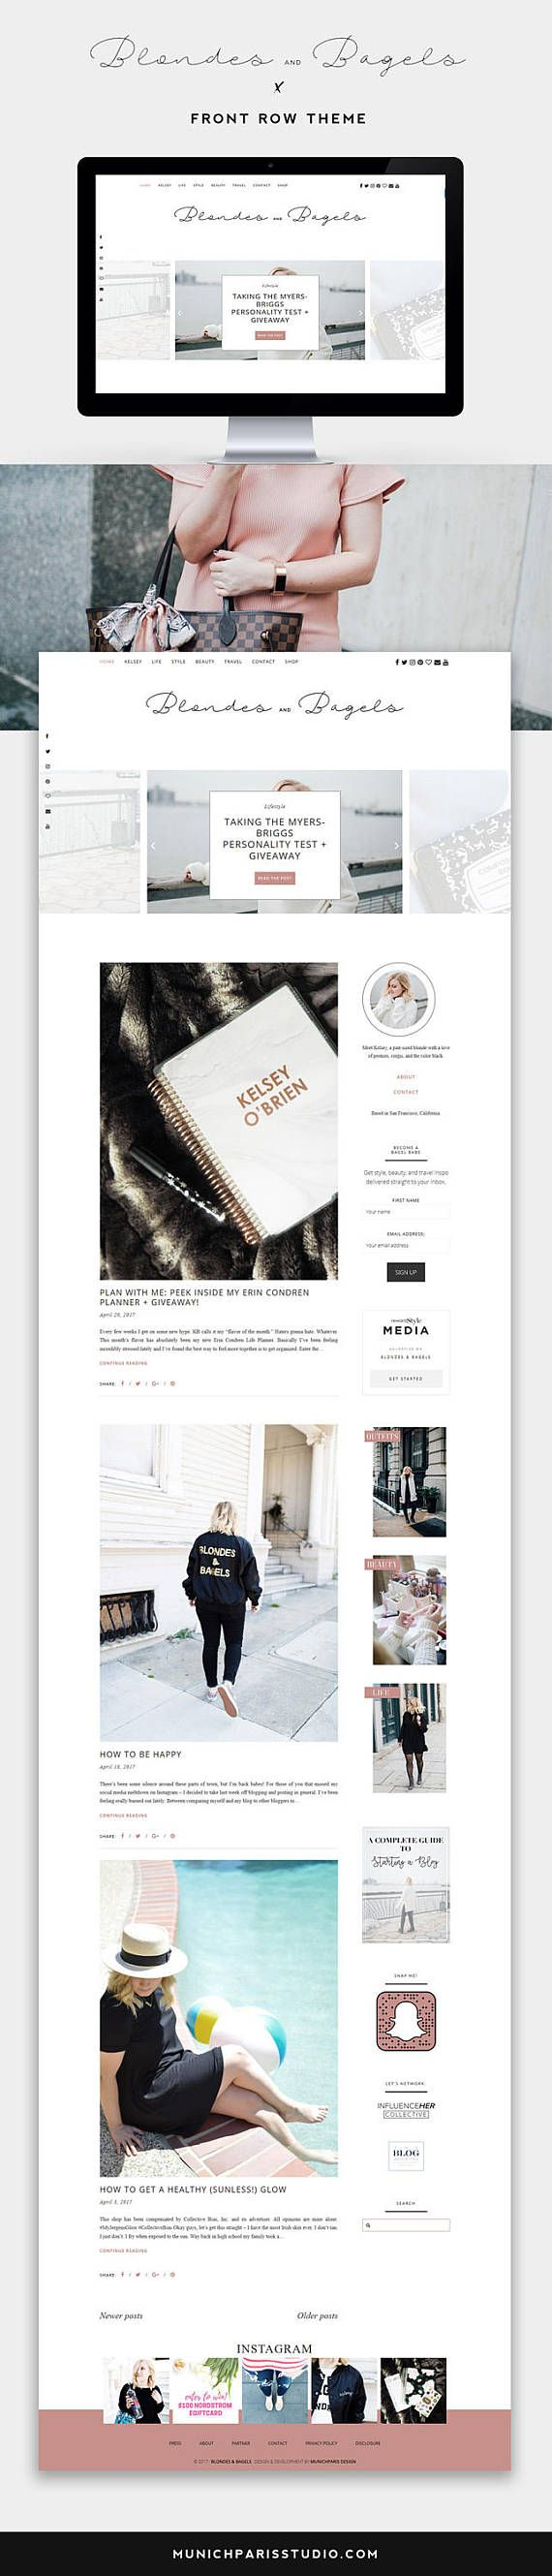 WordPress Theme for Fashion Bloggers / Front Row Stylish and Clean Theme for Lifestyle and Fashion Bloggers / Great Features like Integrated Shop Widget / Instagram Feed / Social Media Widget, Styled About Widget and many more / Shop more Themes at etsy.com/shop/munichparisstudio